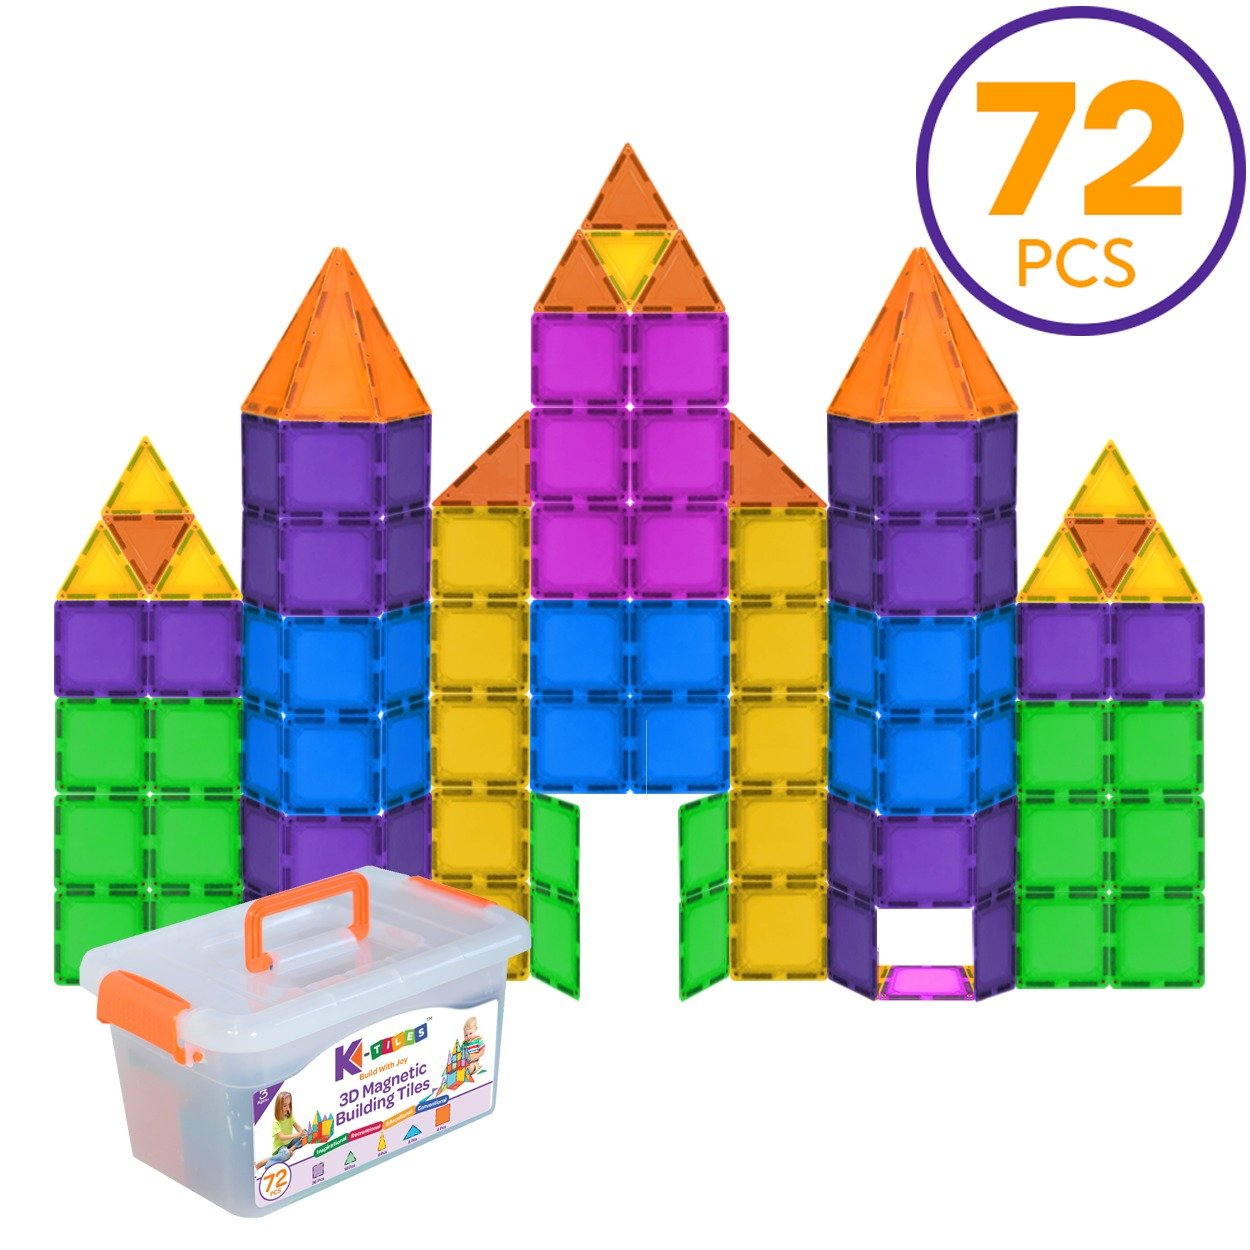 Magnetic blocks Magnetic Building Blocks For Kids (72 Pieces): Colorful Tiles With Strong Magnets, Educational Toys For Children, Creativity, Imagination, & Motor Skills For Girls & Boys Review